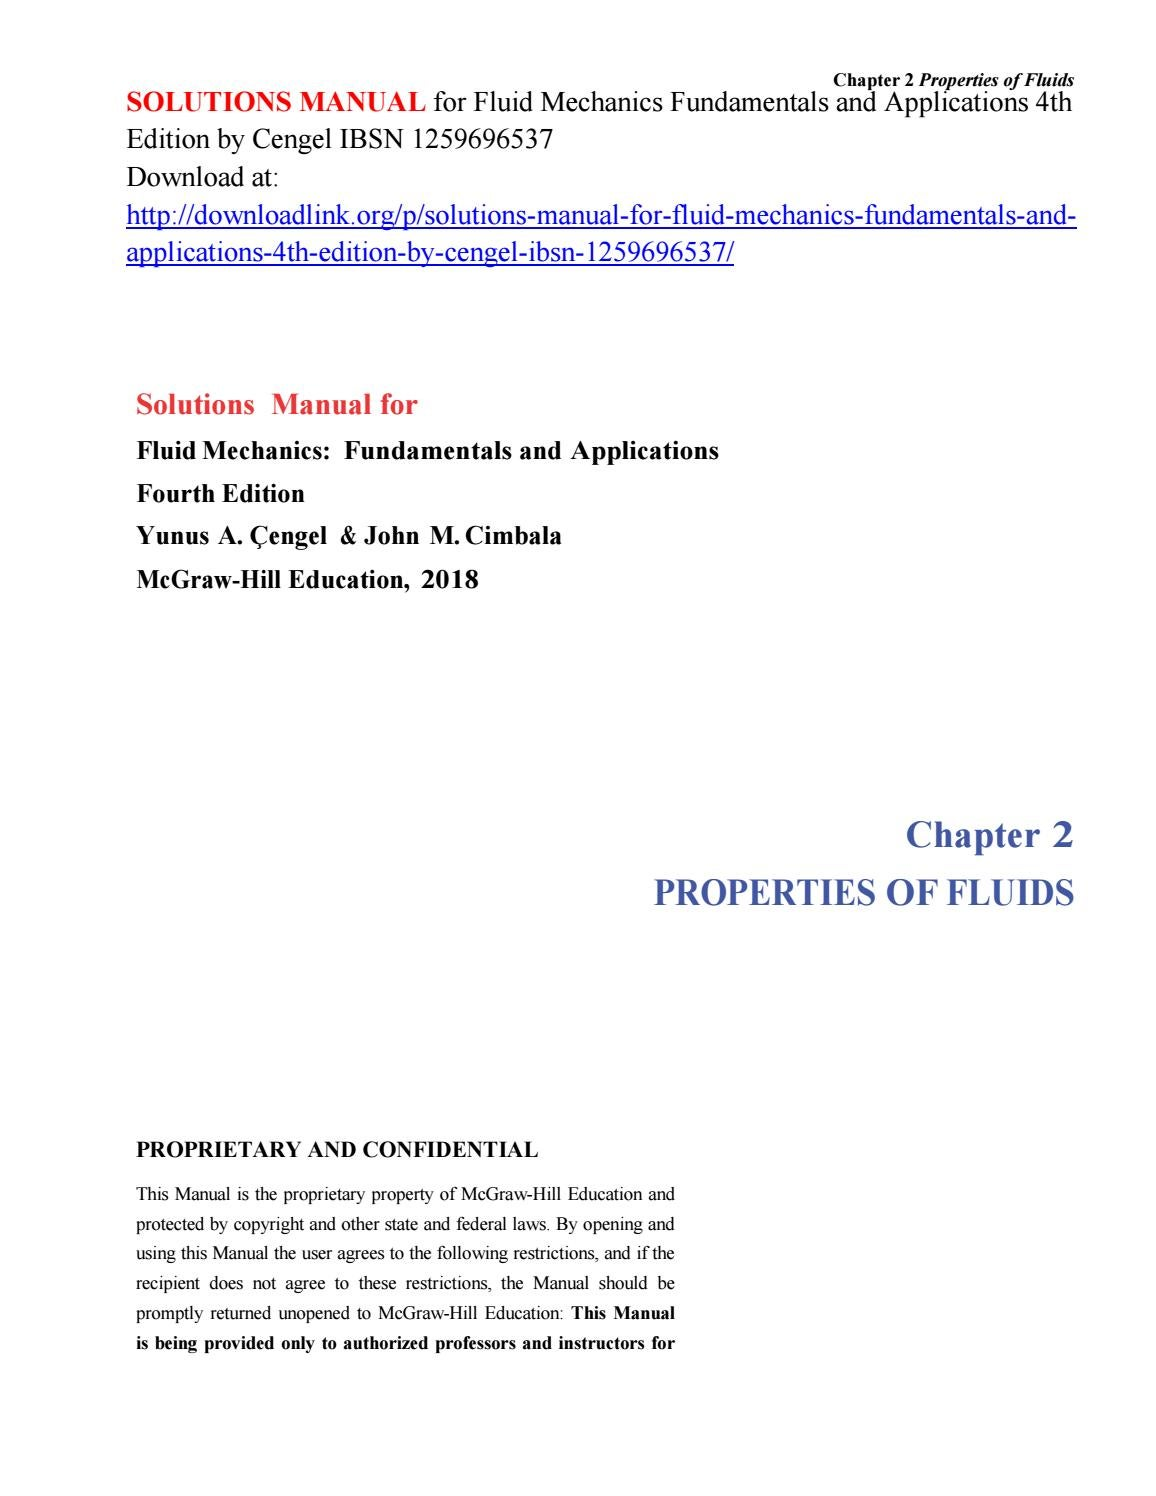 Solutions Manual for Fluid Mechanics Fundamentals and Applications 4th Edition  by Cengel IBSN 125969 by Brennanwass - issuu